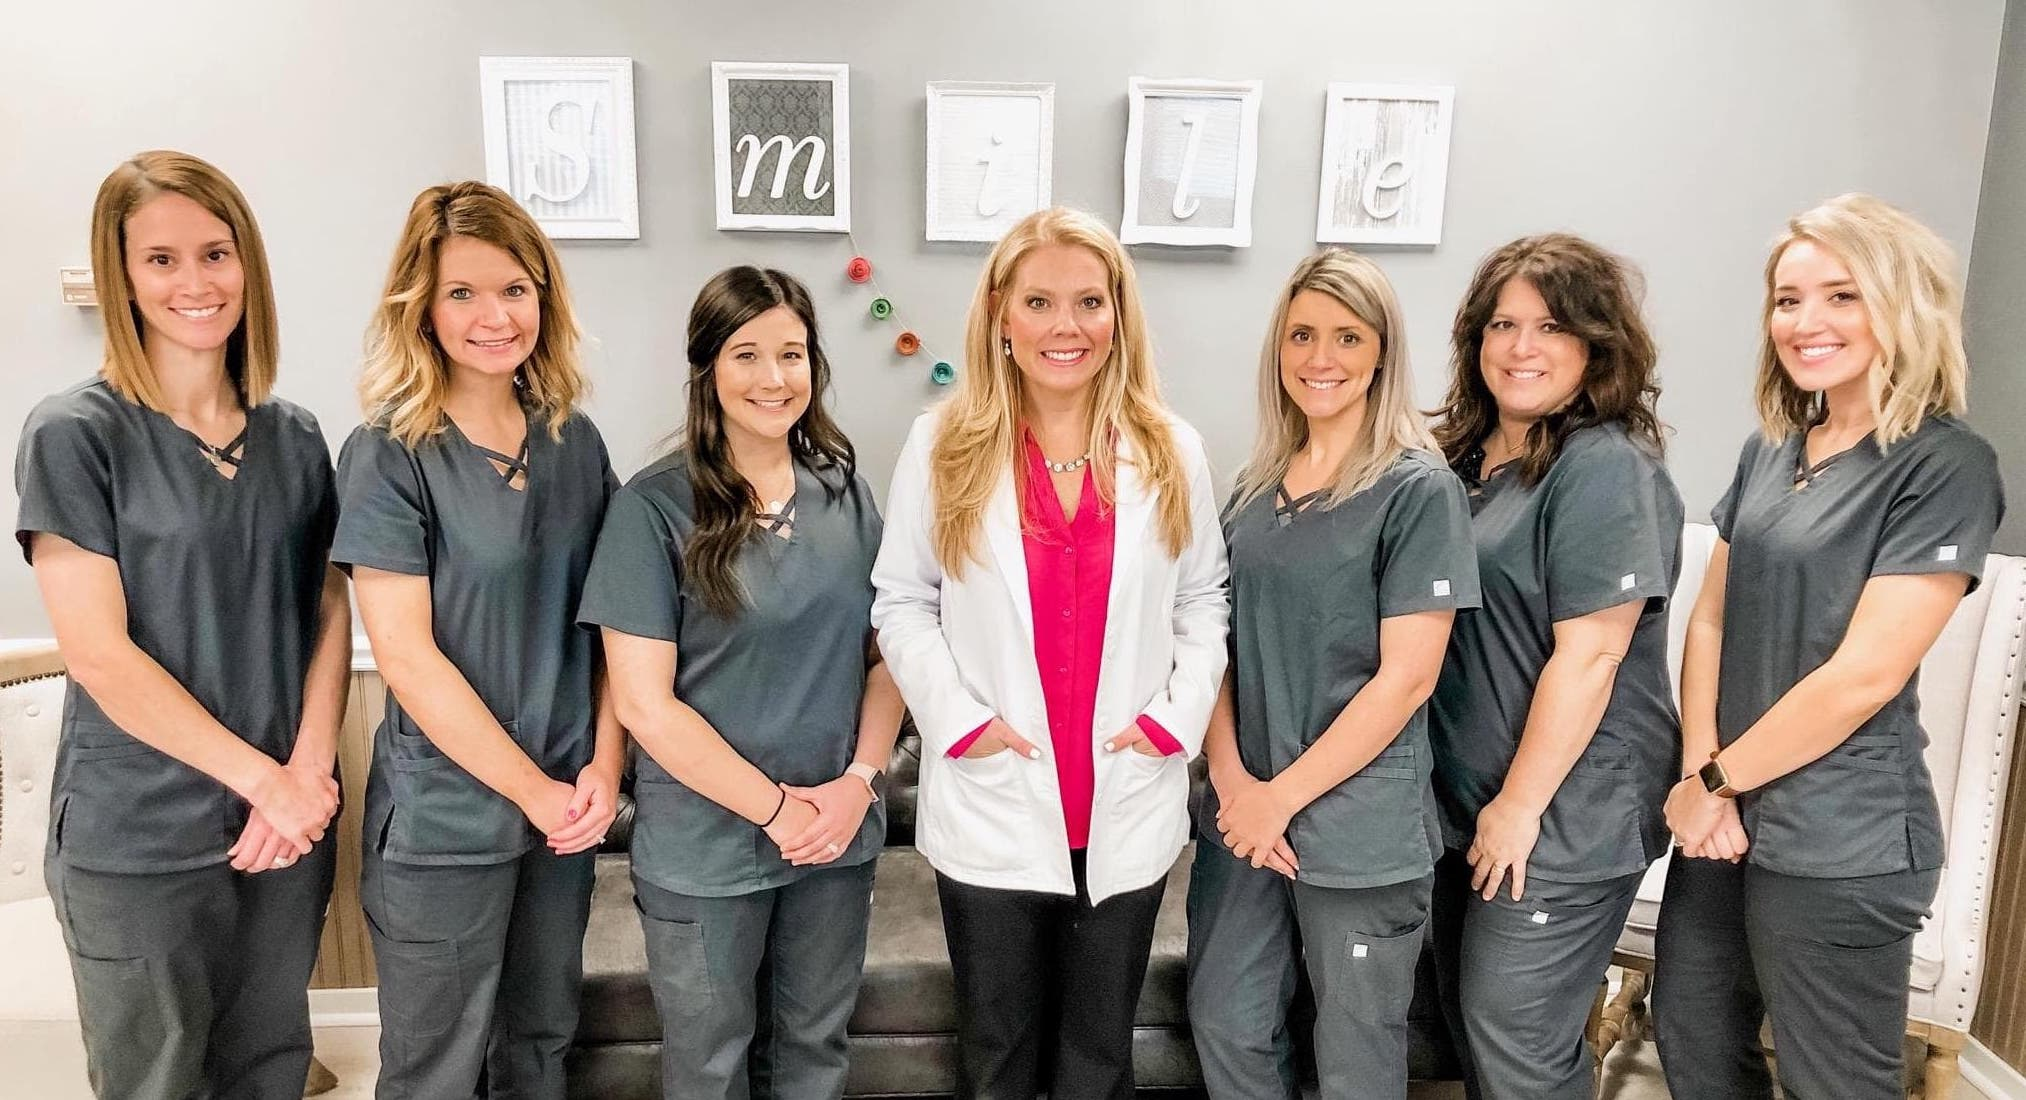 Burns Orthodontics smile team and staff